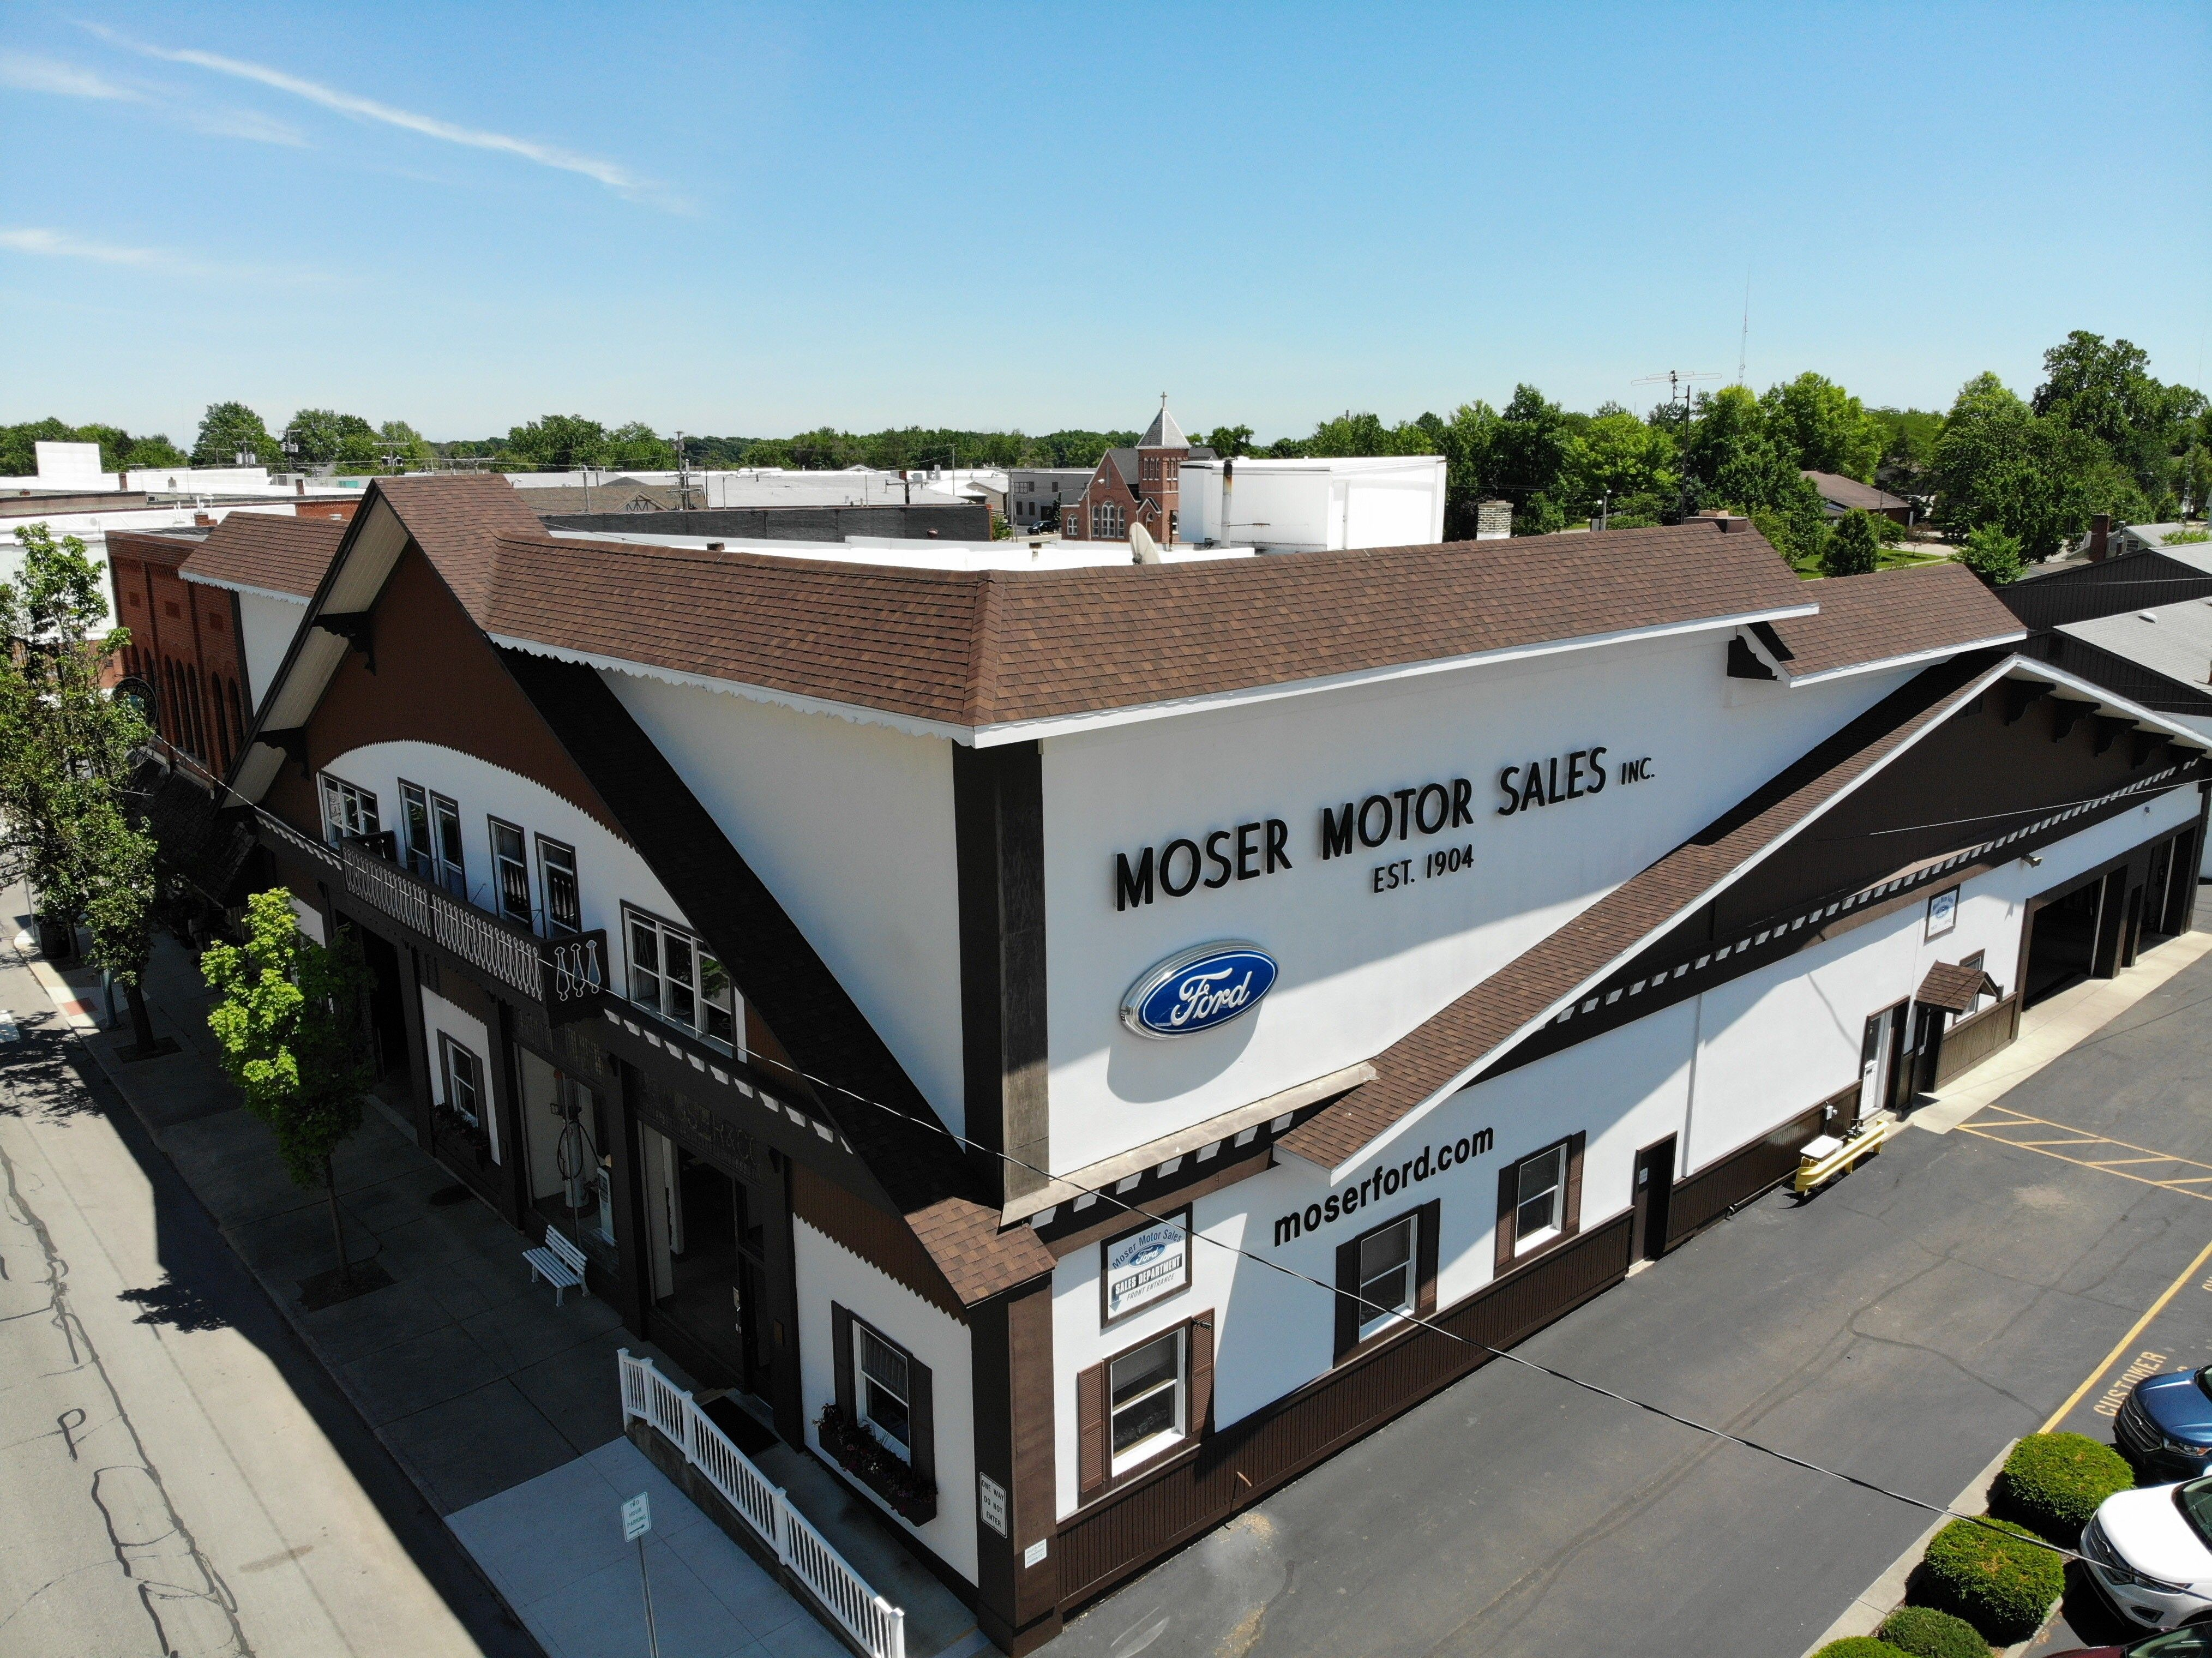 Moser Motor Sales since 1904 has the best prices and best